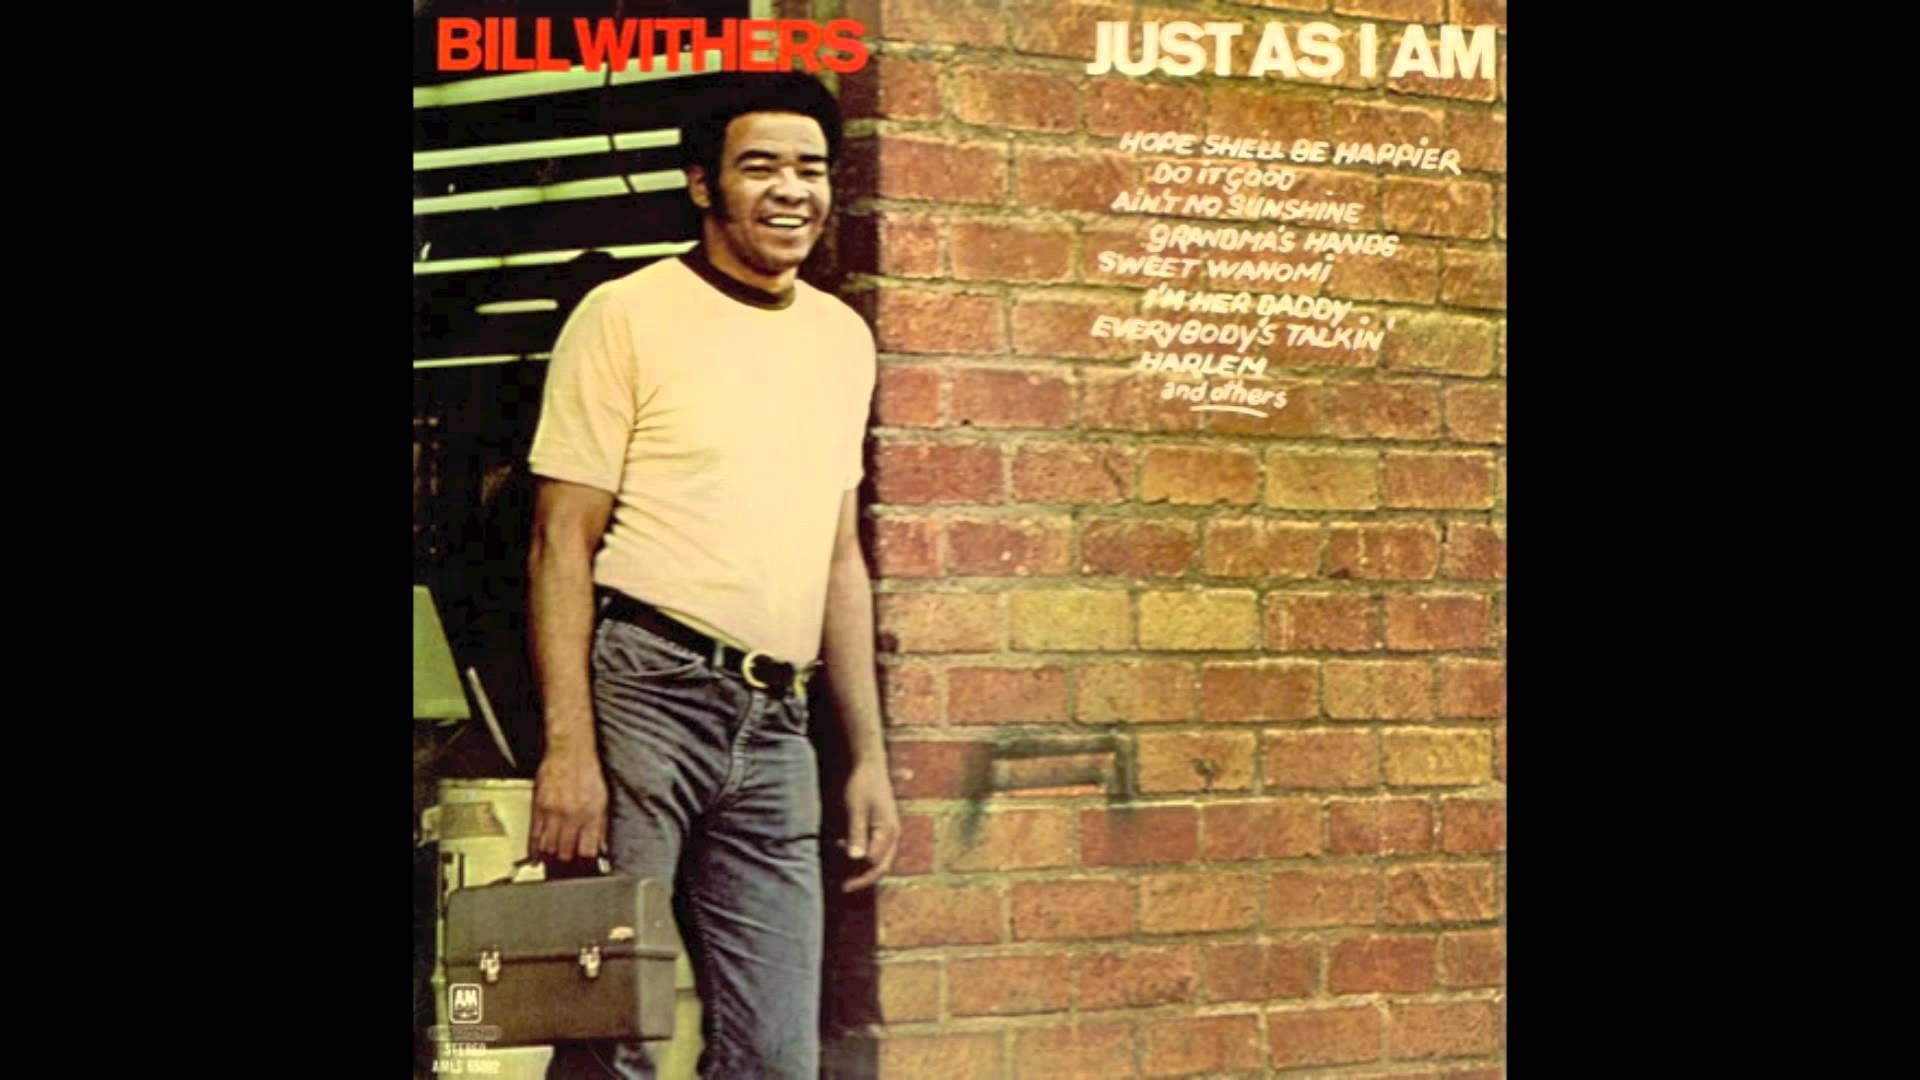 Ain't No Sunshine - Bill Withers [Just As I Am] (1971)